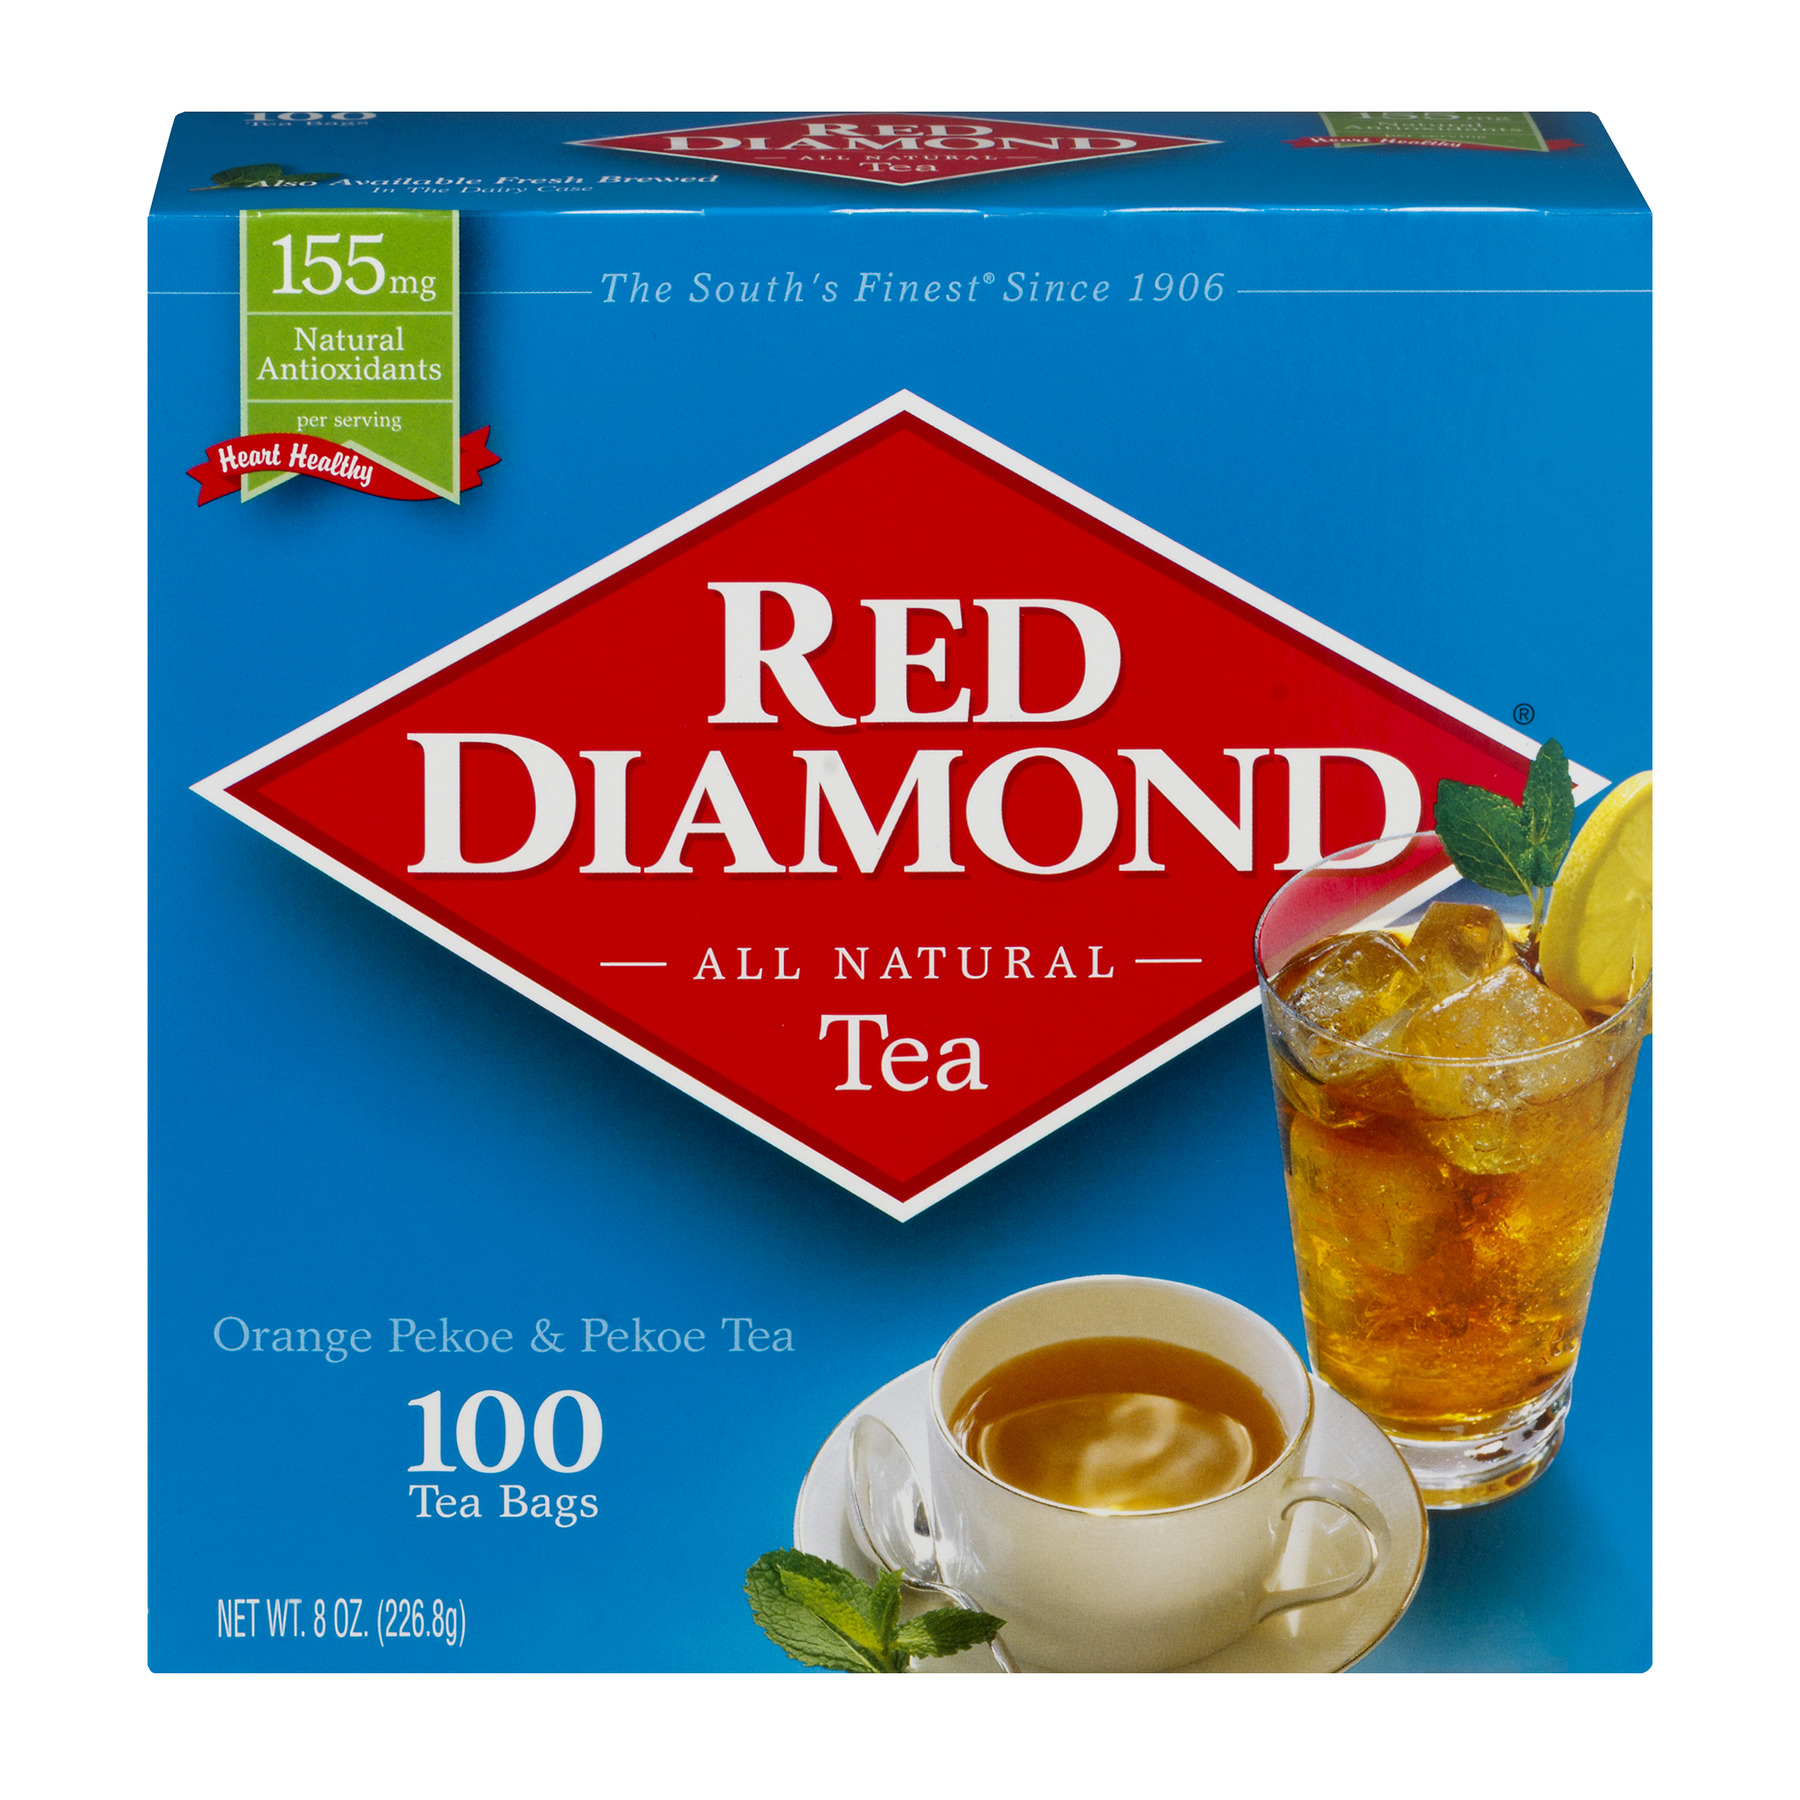 Red Diamond Tea Bags, 100 count